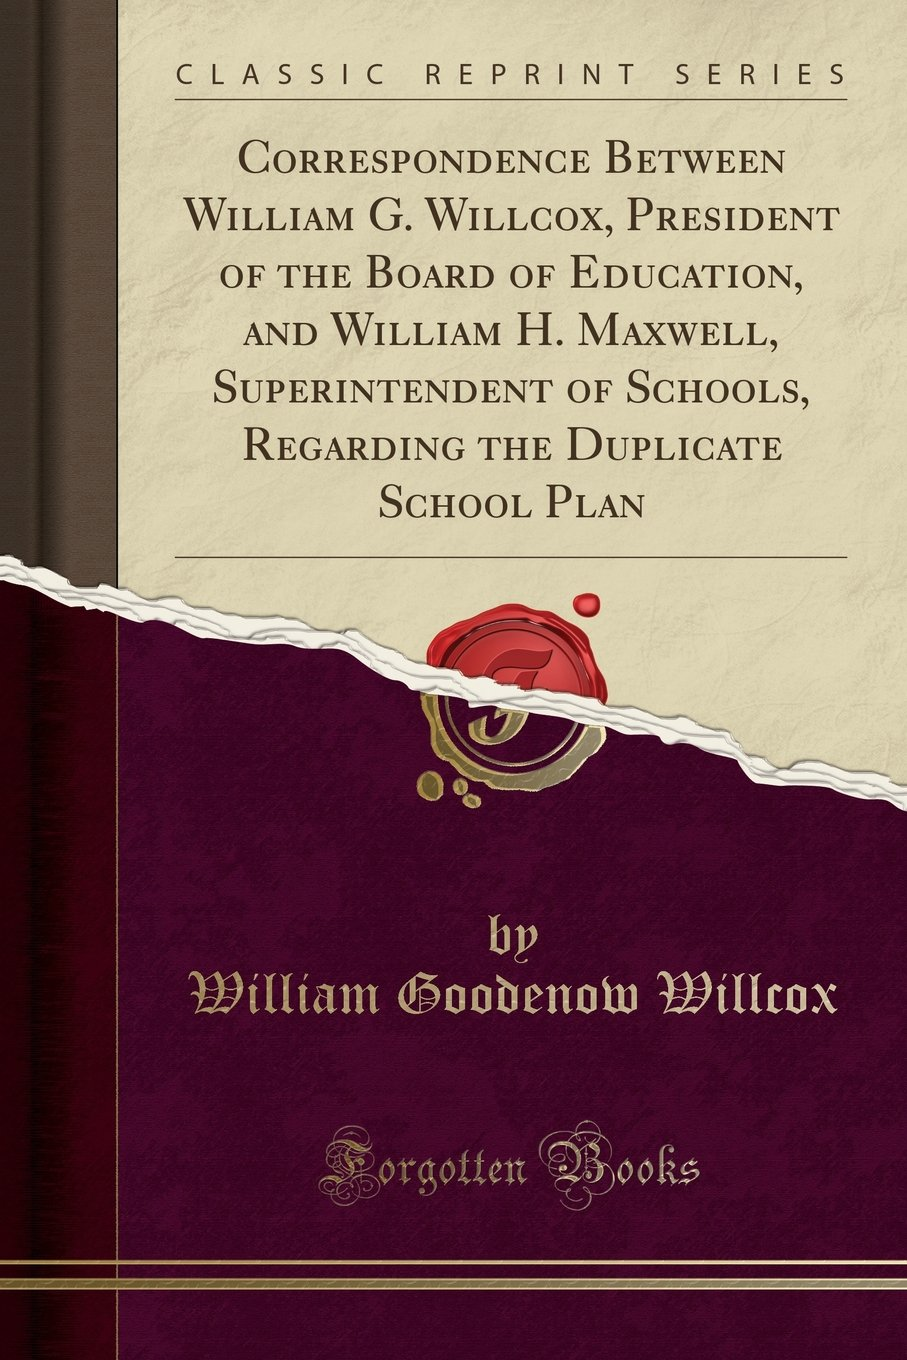 Download Correspondence Between William G. Willcox, President of the Board of Education, and William H. Maxwell, Superintendent of Schools, Regarding the Duplicate School Plan (Classic Reprint) pdf